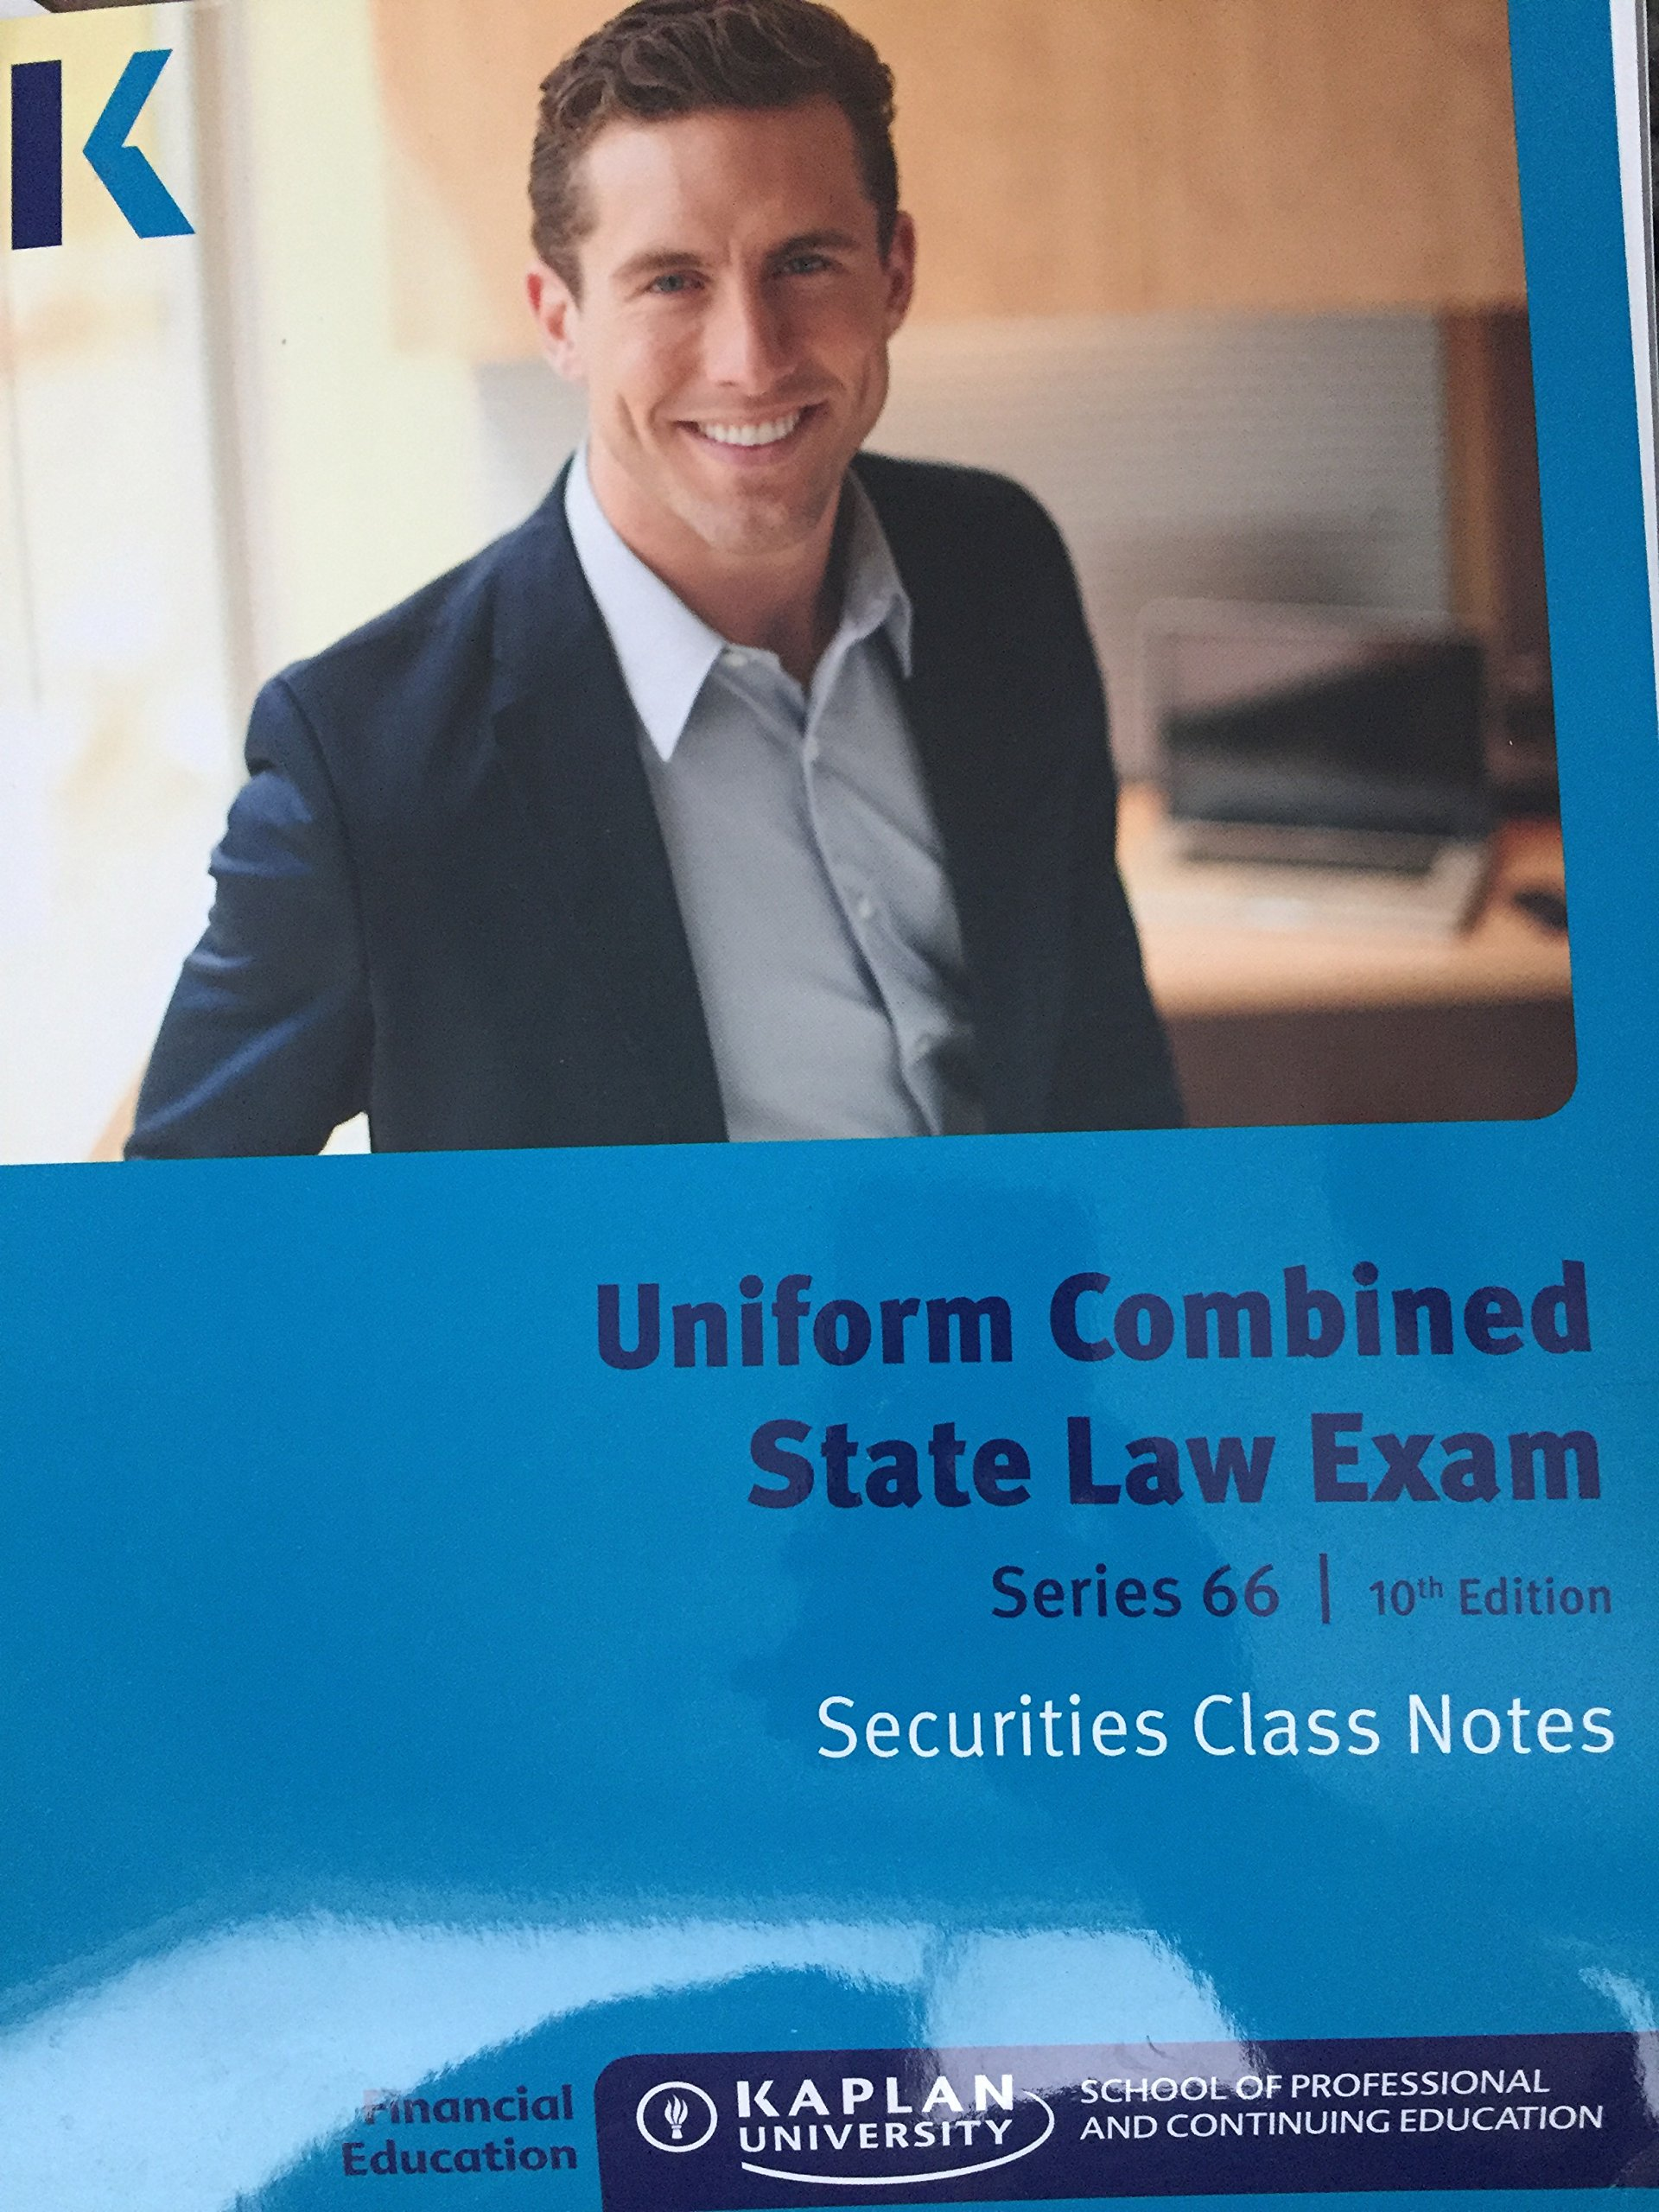 Download Uniform Combined State Law Exam Series 66 10th Edition Class Notes PDF